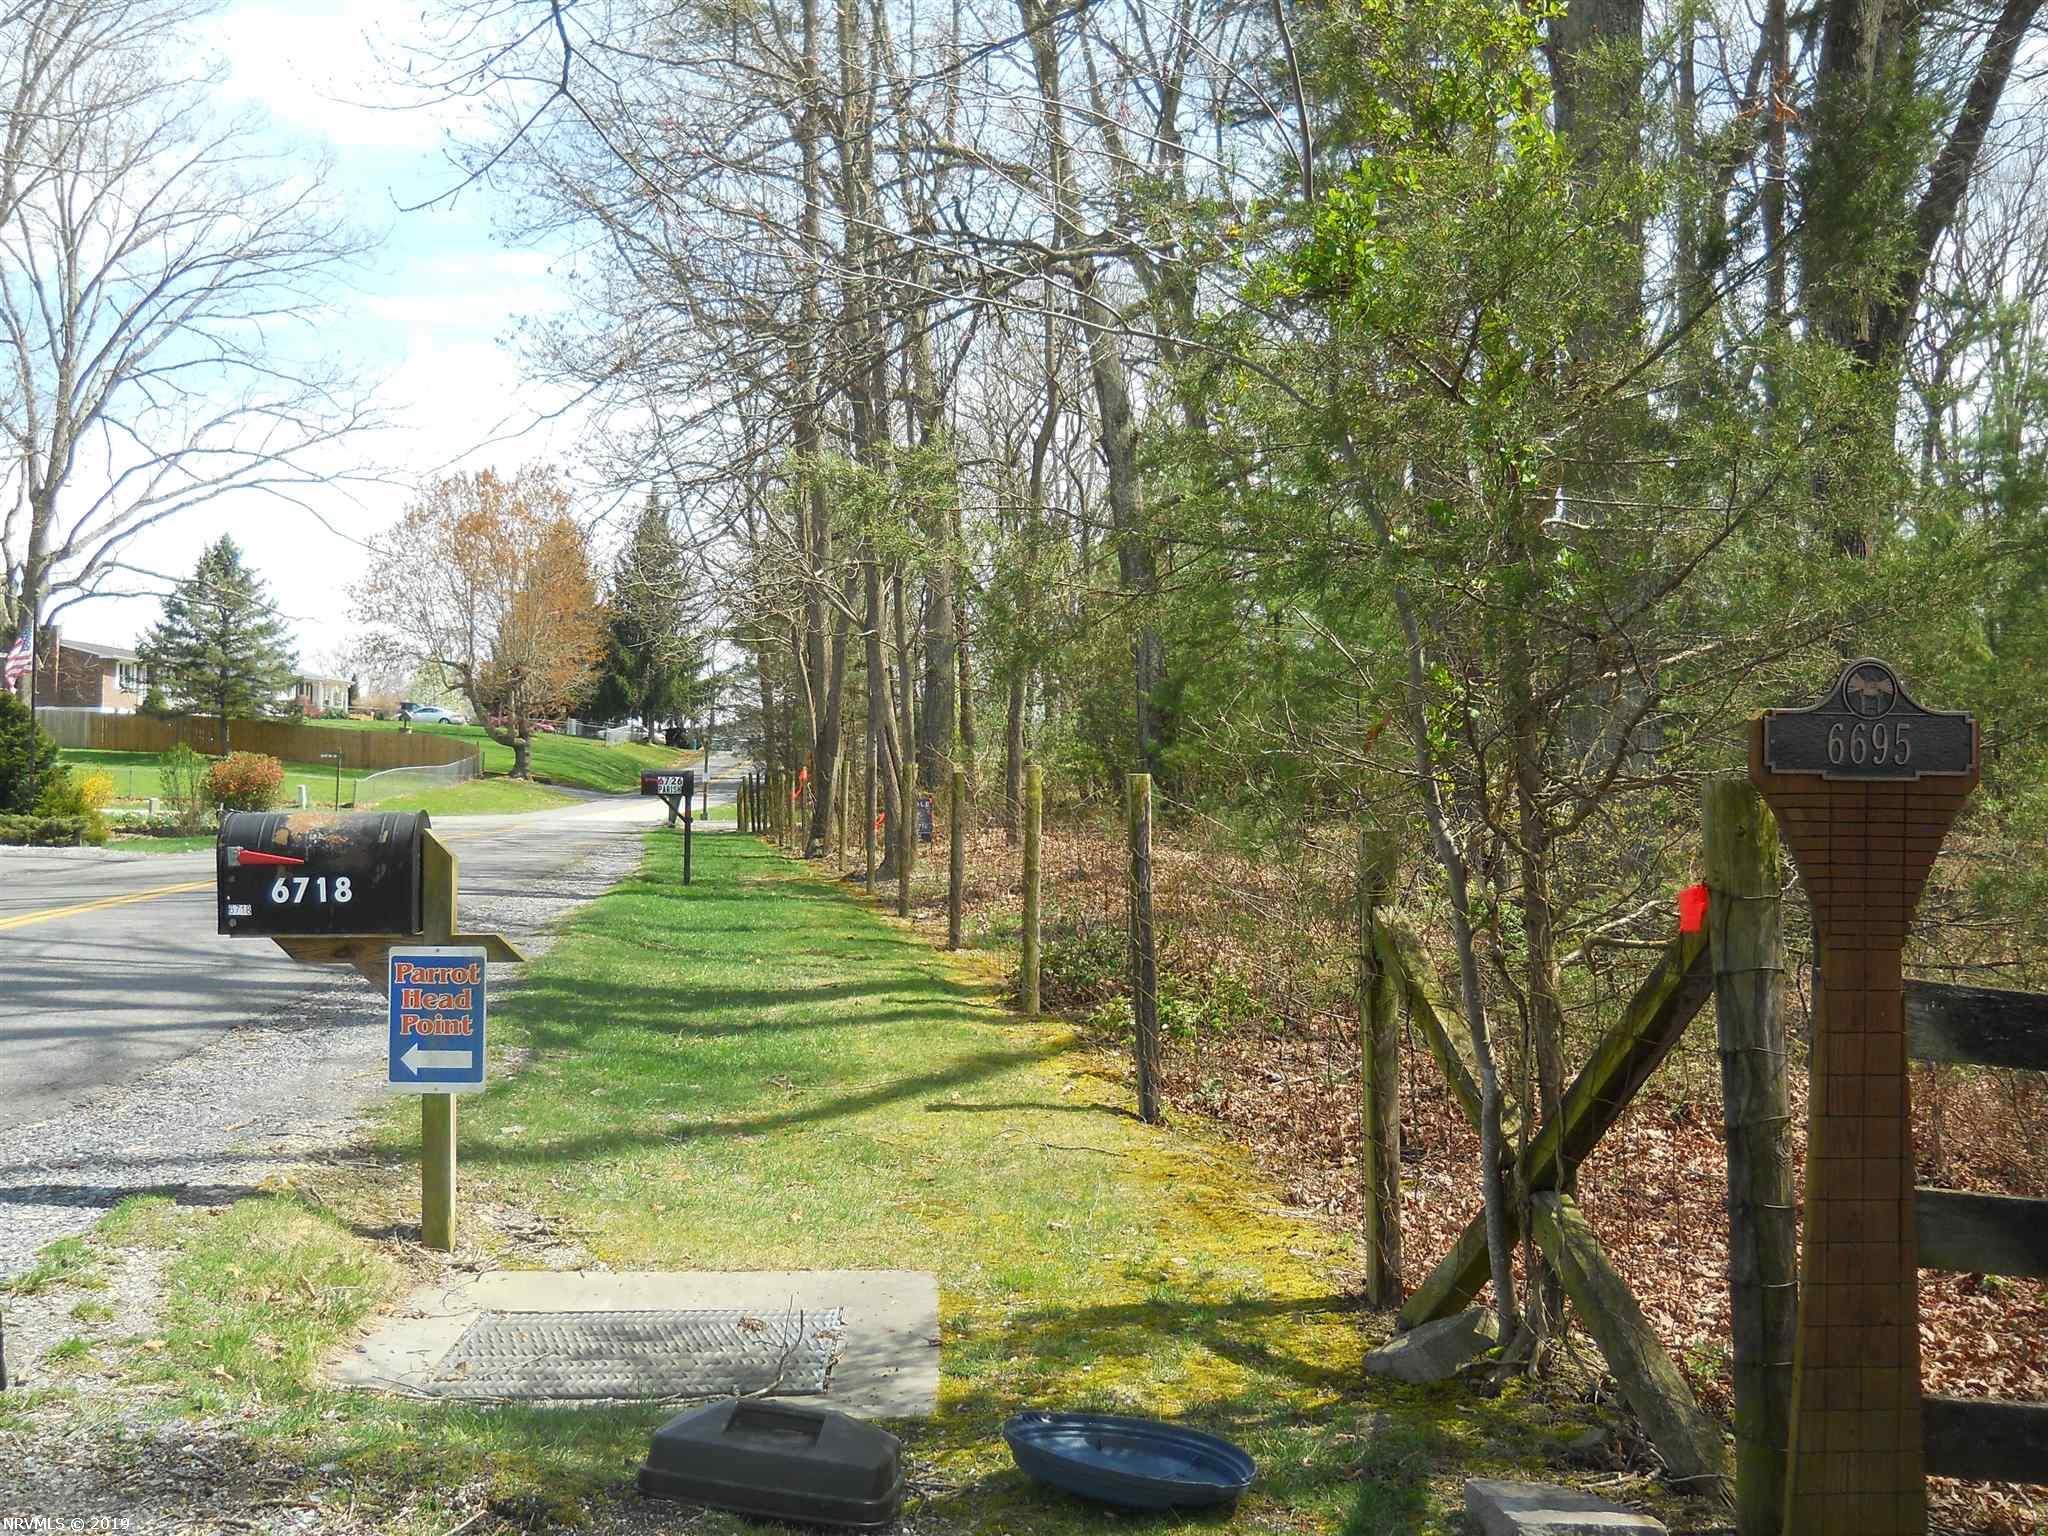 BEAUTIFUL BUILDING LOT, LEVEL, MATURE OAKS! DEEDED LAKE ACCESS TO THE LAKESHORE LAUNCH AREA FOR YOUR BOAT OR PWC!. EACH LOT HAS APPROXIMATELY 105 FEET OF ROAD FRONTAGE.  SOME RESTRICTIONS. ONLY 5 MINUTES FROM THE STATE PARK AND BEACHES AND ALSO TO I 81!  FIRST TIME EVER OFFERED FOR SALE!